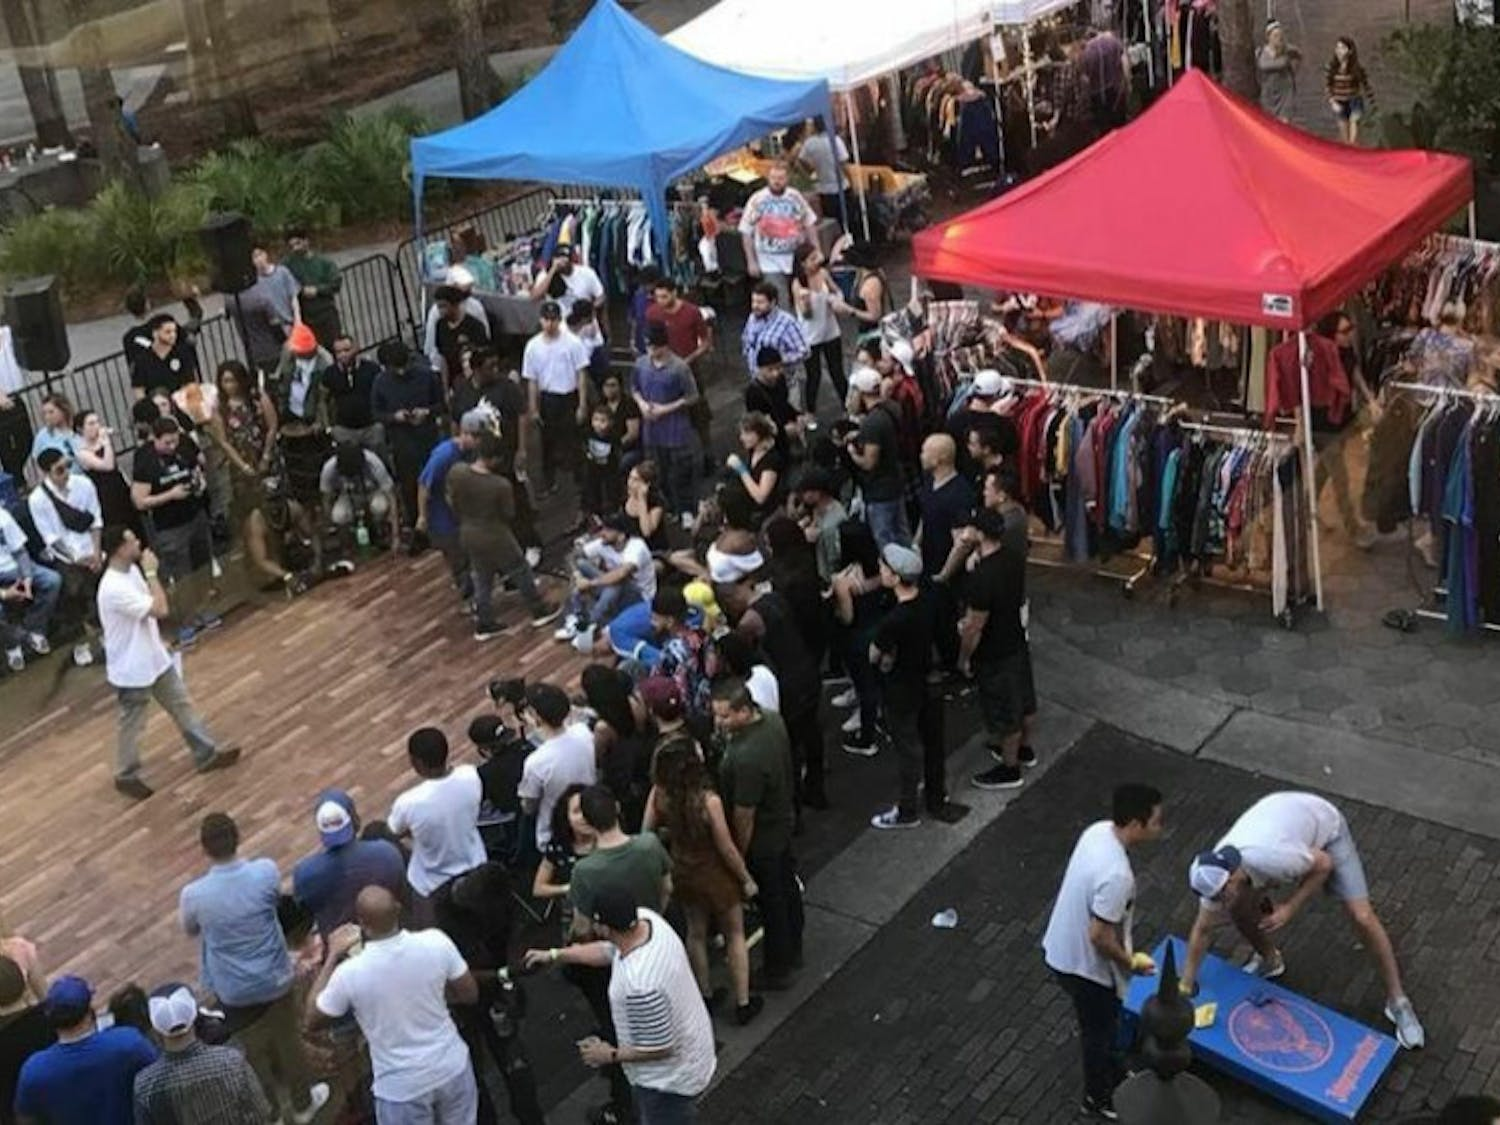 The first Florida Vintage Market took place at Wall Street in downtown Orlando on Dec. 30, 2018. After its success, Gazzelli Sport Vintage owners decided to bring the event to Gainesville.